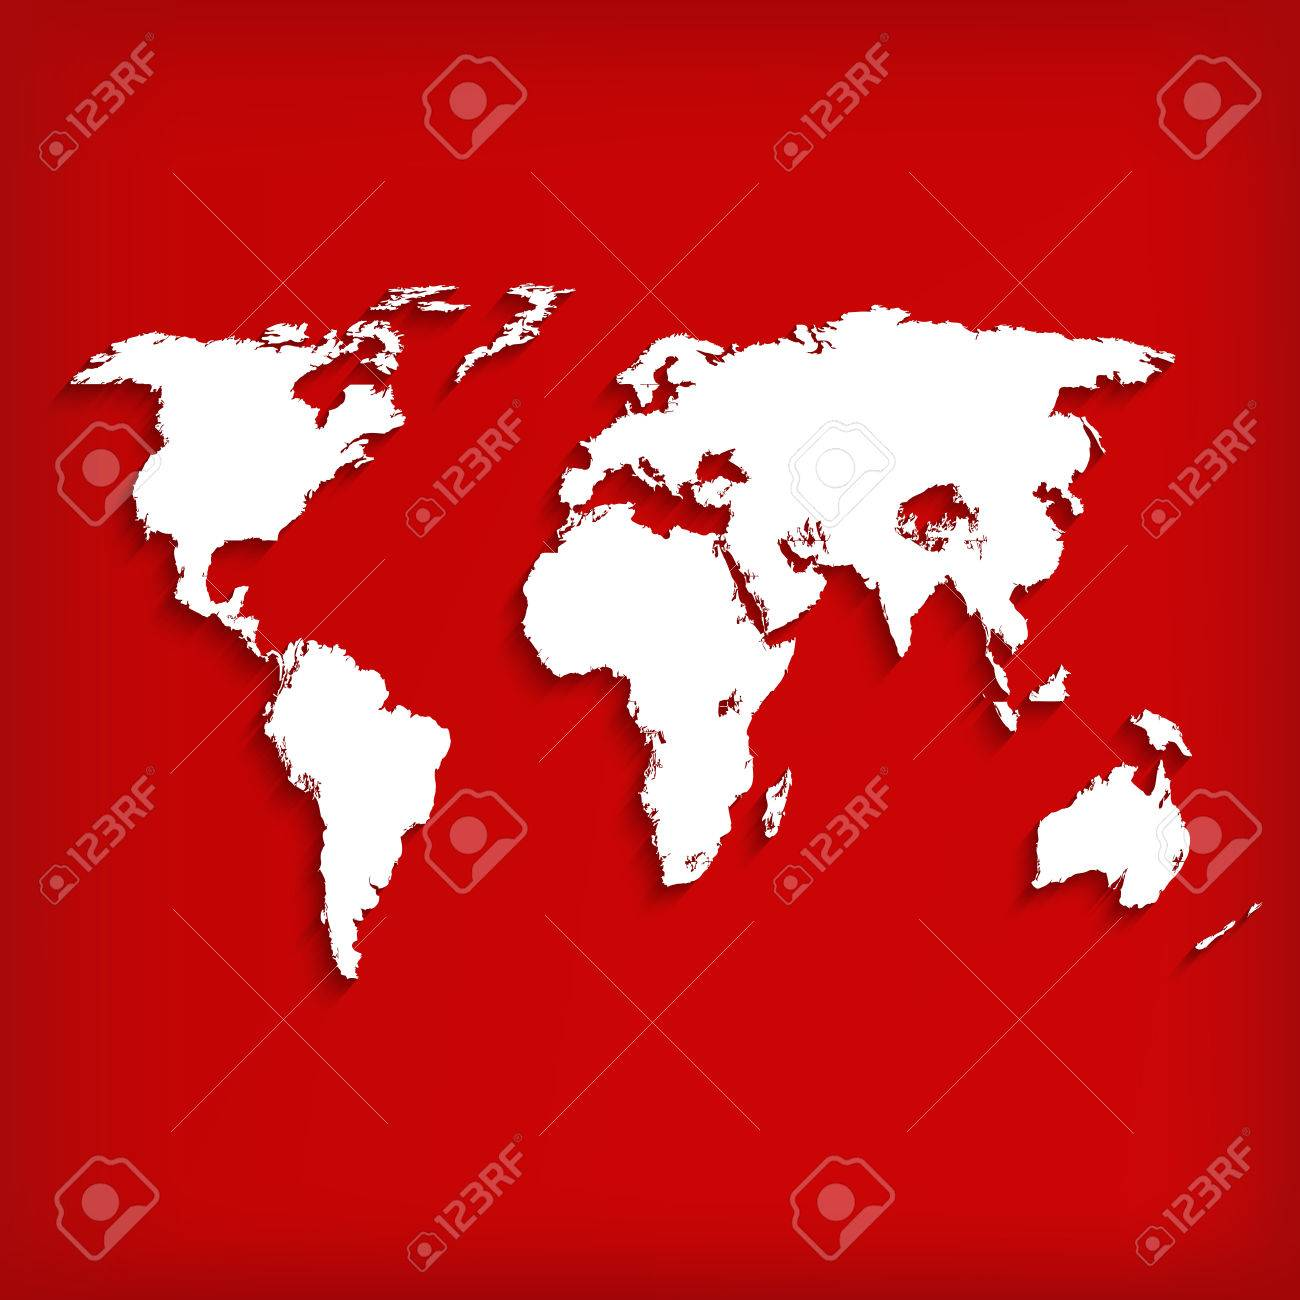 Abstract background with world map on red vector illustration abstract background with world map on red vector illustration stock vector 26076888 gumiabroncs Choice Image